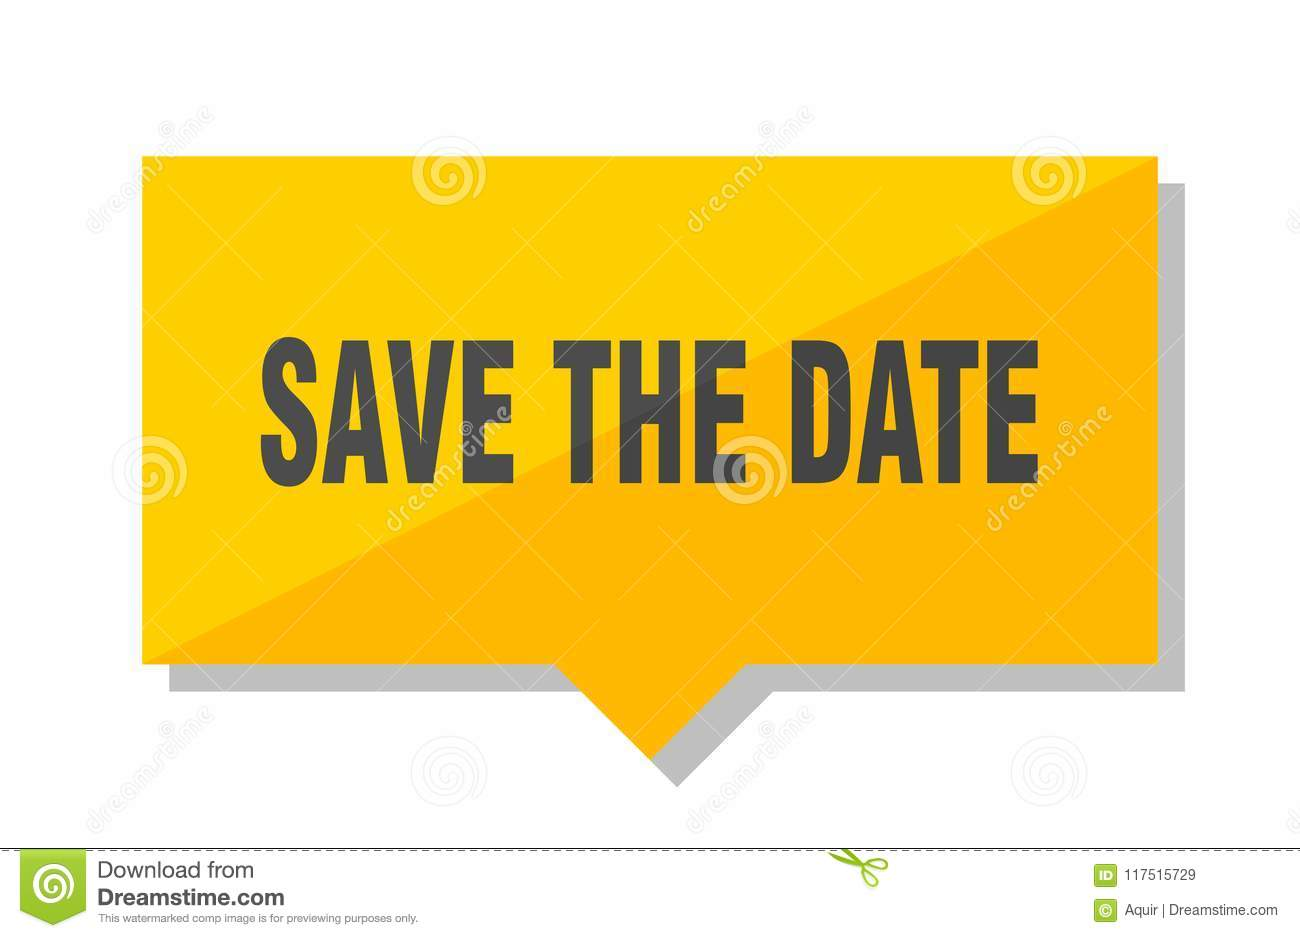 Save the date price tag